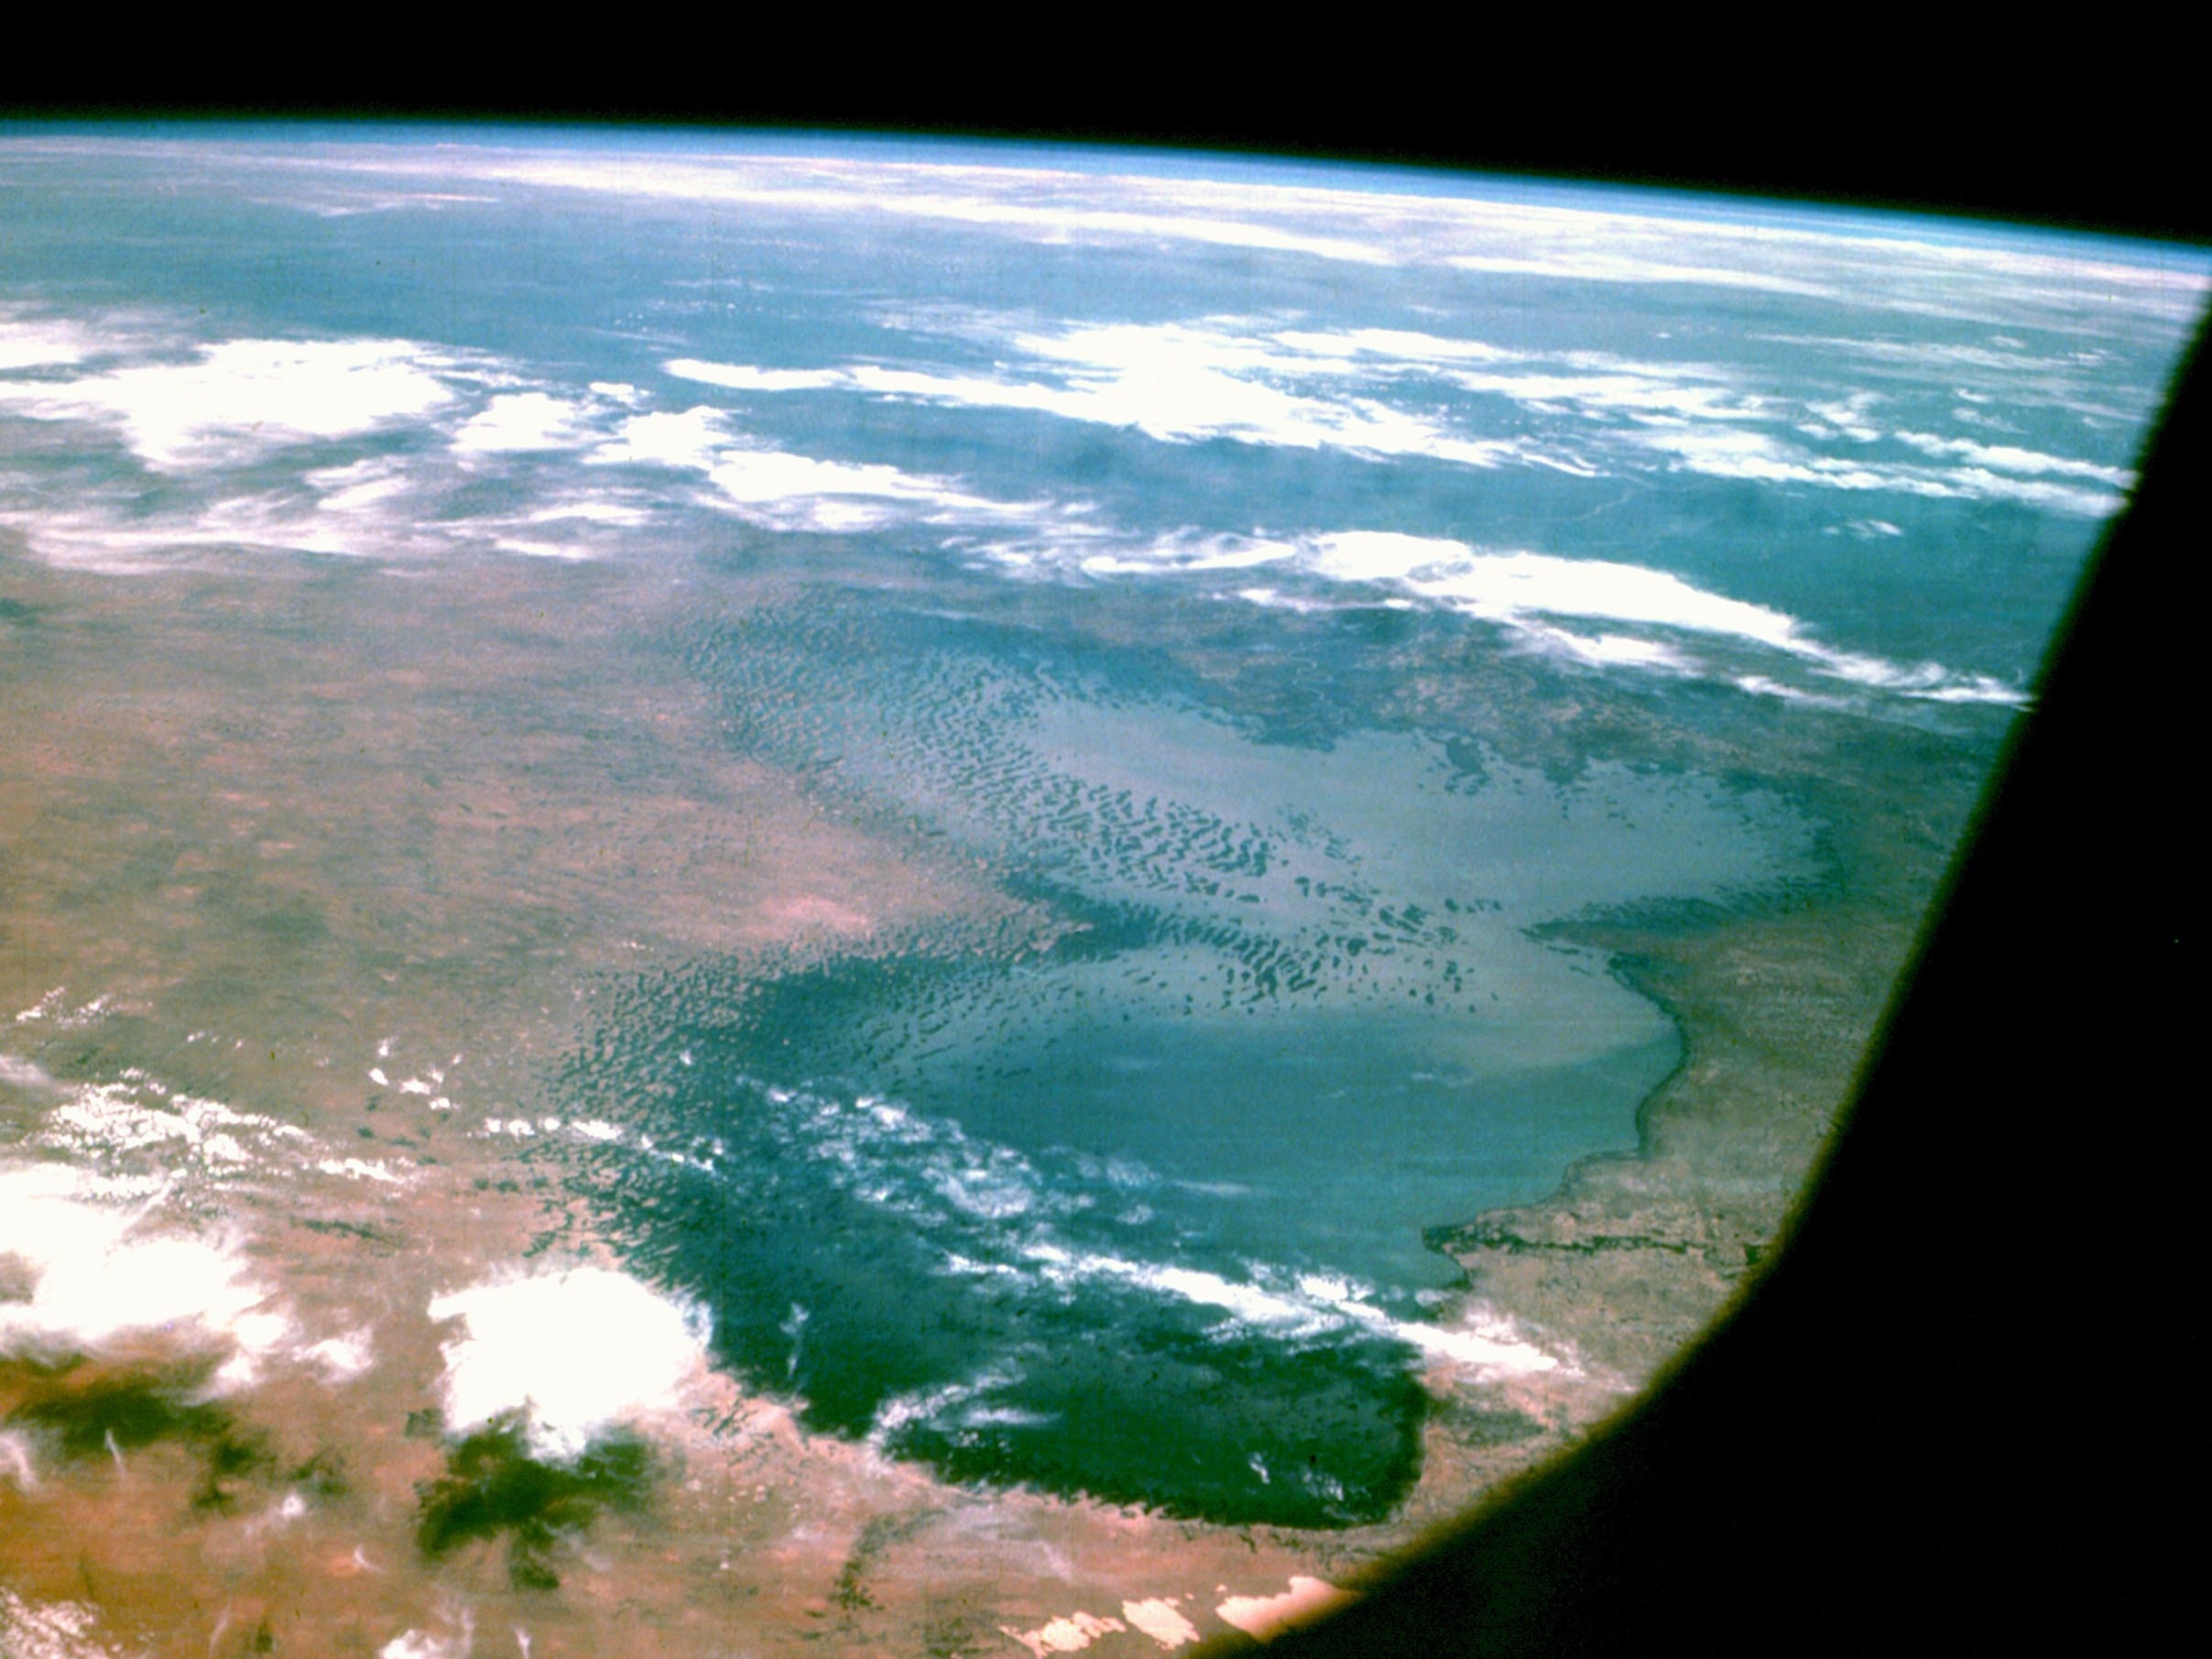 o lago chade, visto da apollo 7 (Foto: wikimedia commons)